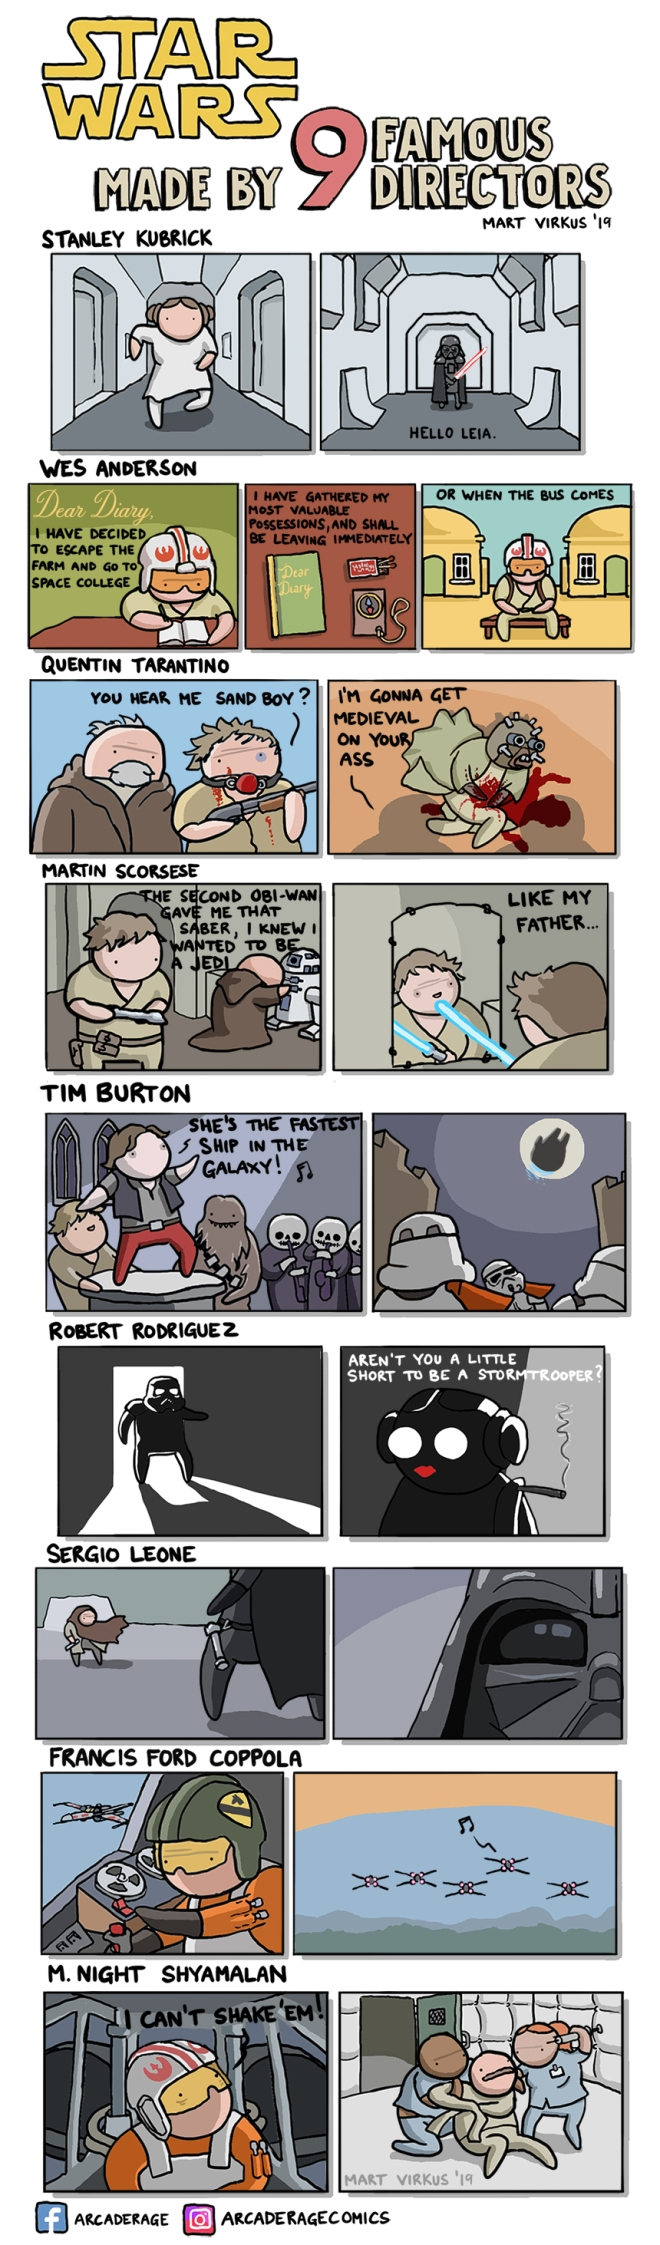 Star Wars Made By 9 Famous Directors